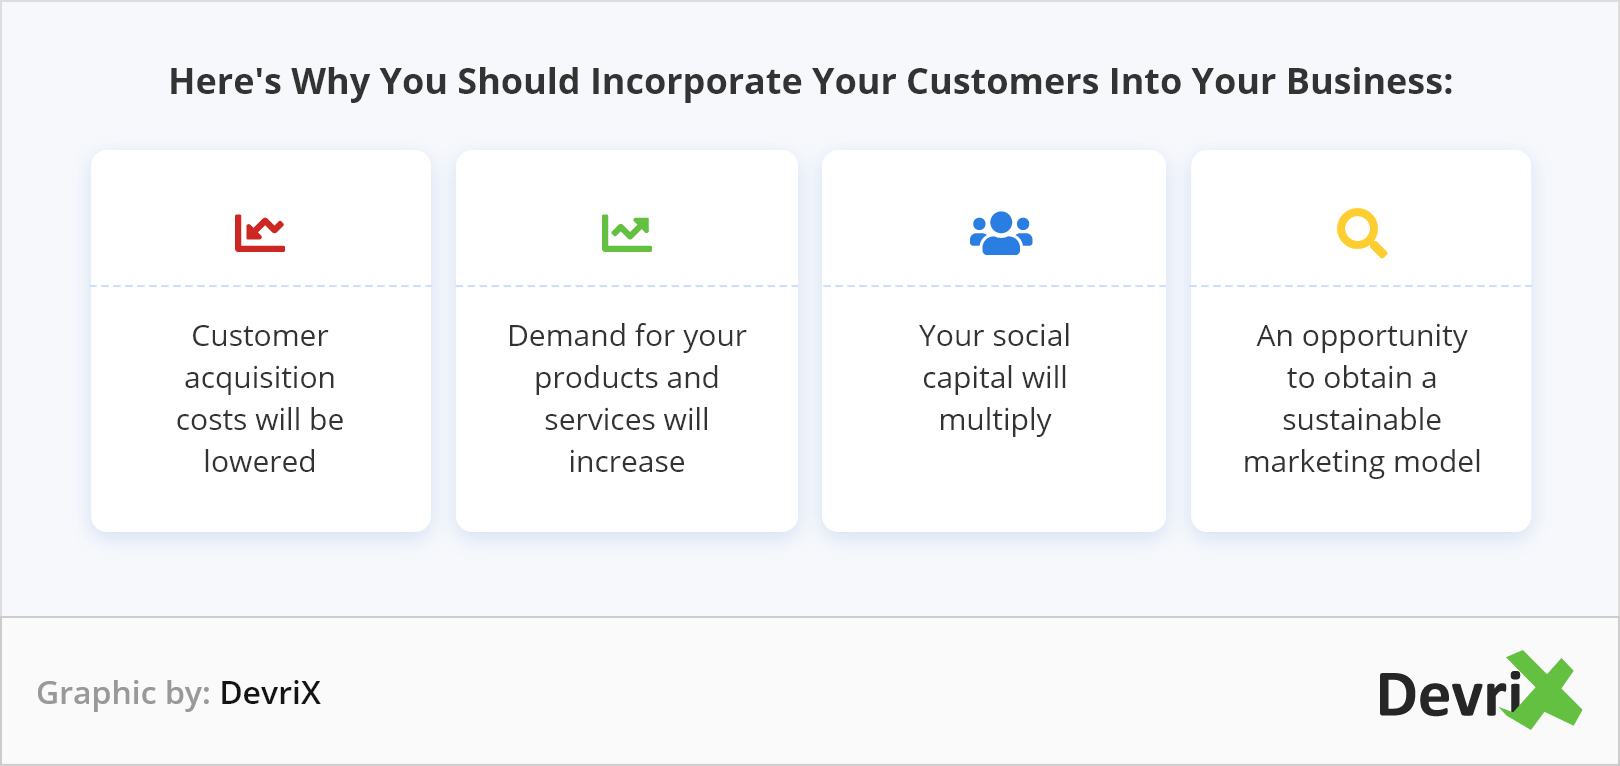 Here's-Why-You-Should-Incorporate-Your-Customers-Into-Your-Business